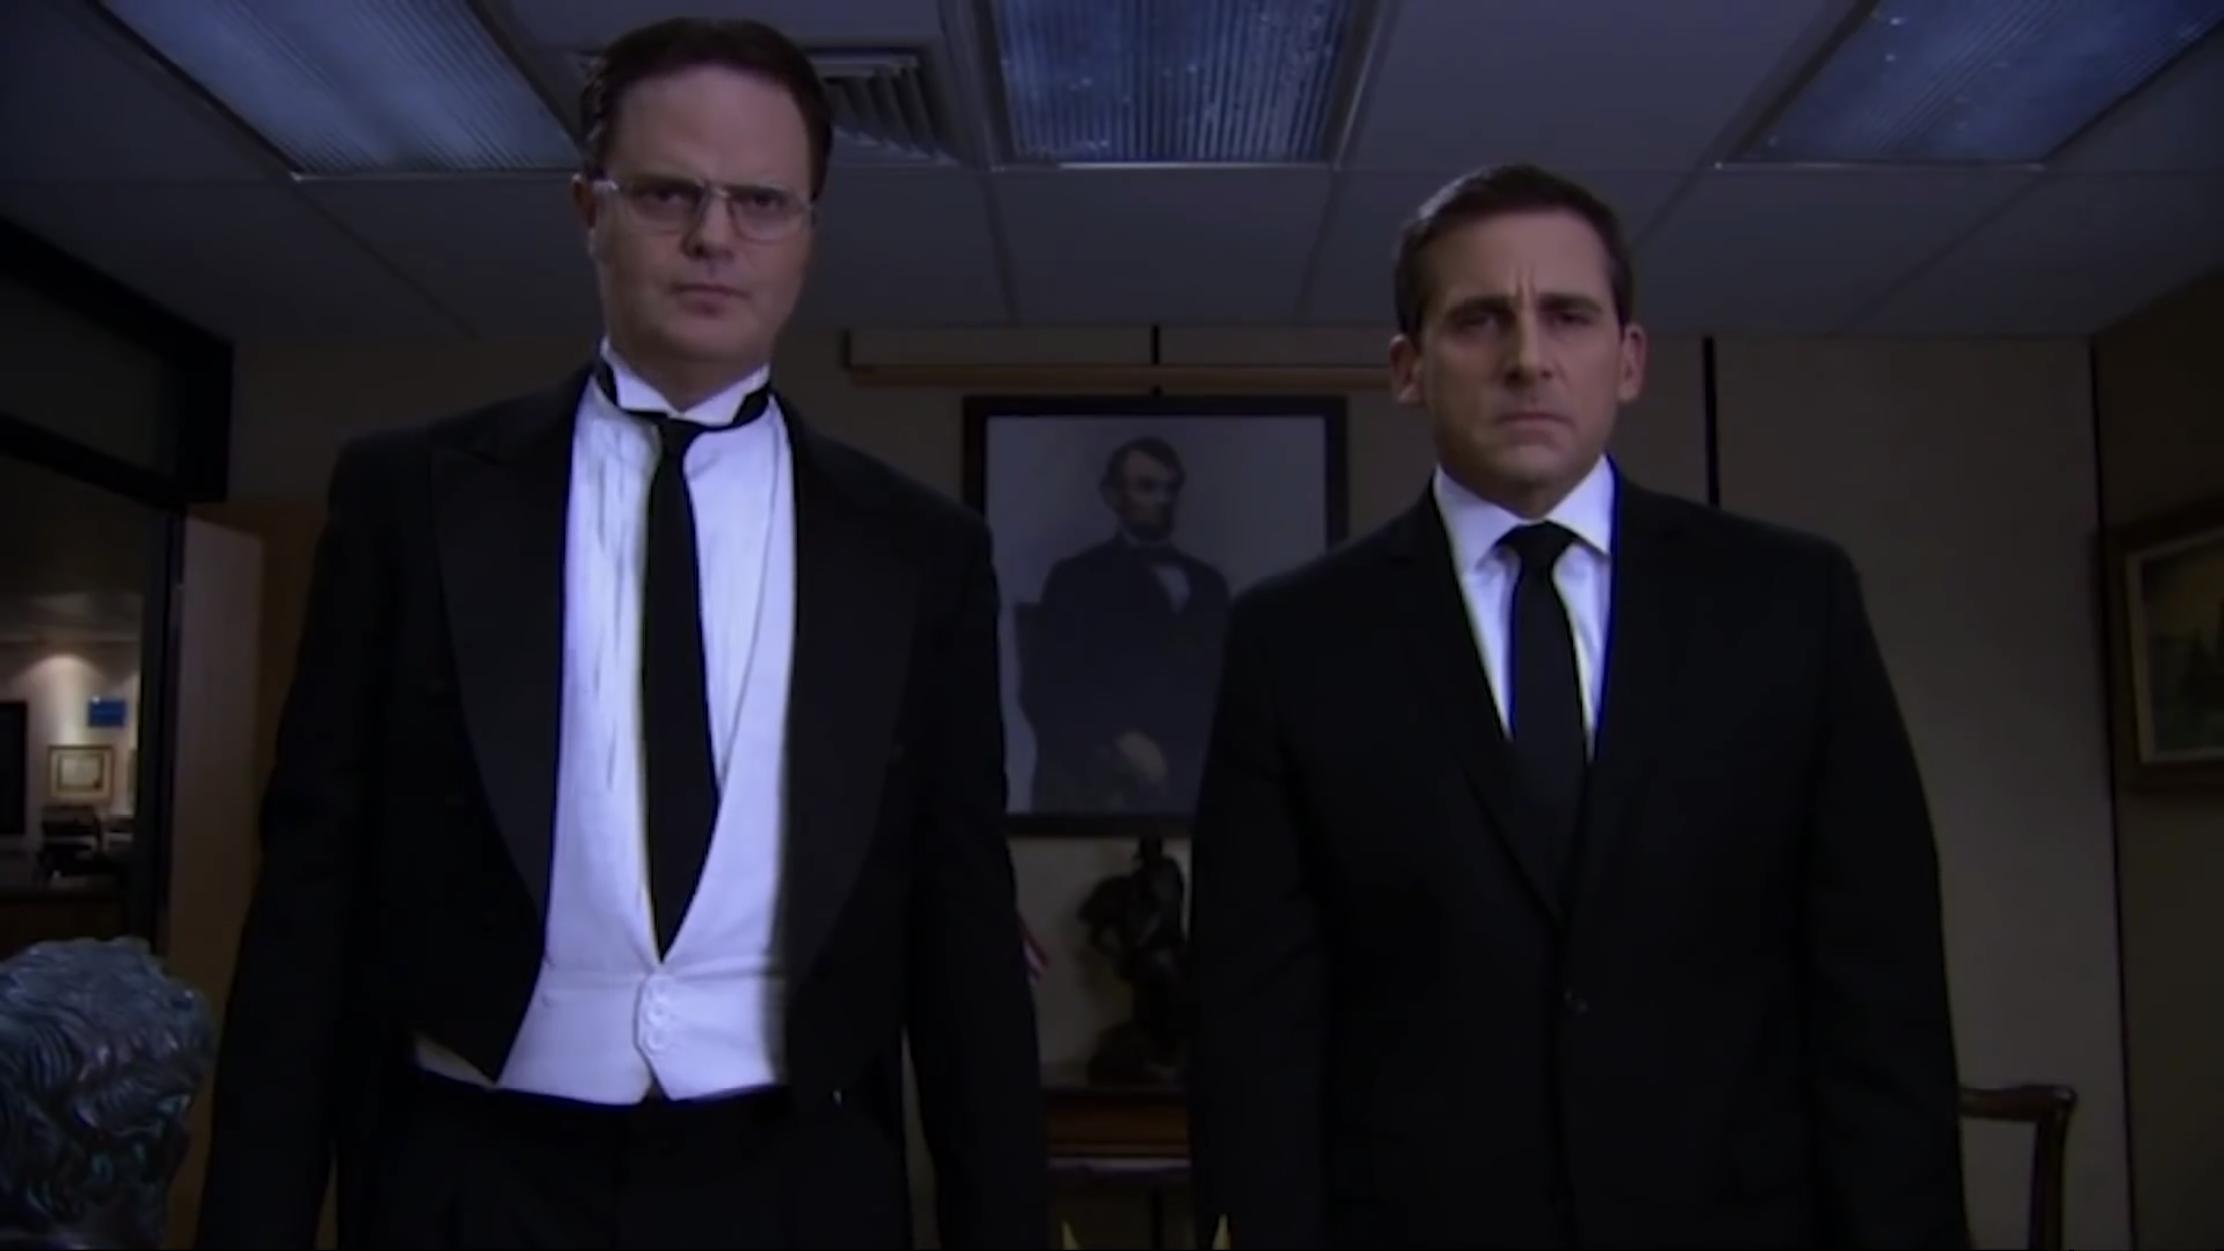 Steve Carell and Rainn Wilson in The Office (2005)